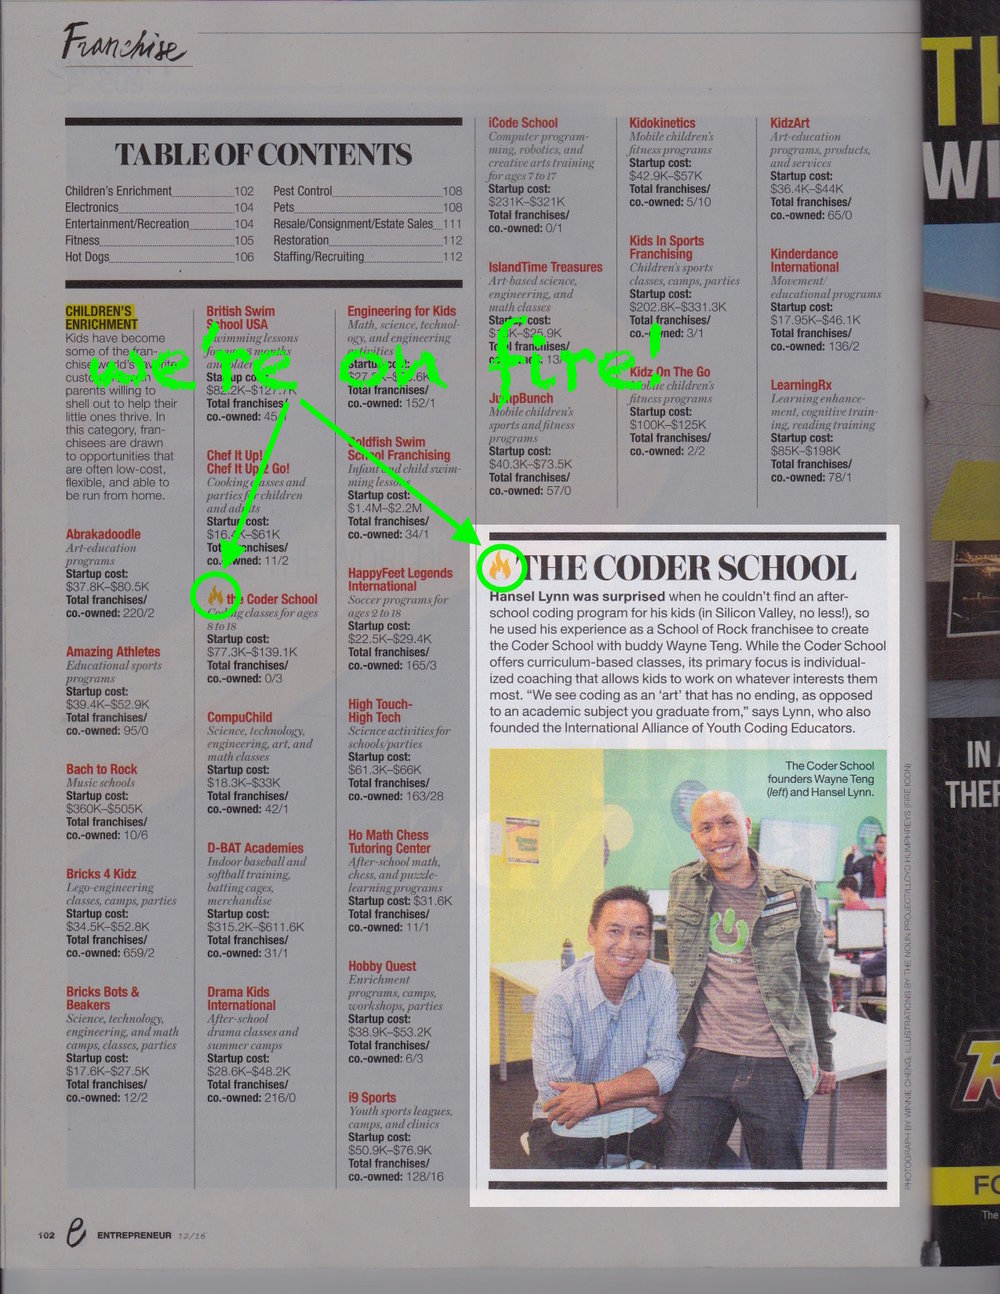 We're in Entrepreneur Magazine!